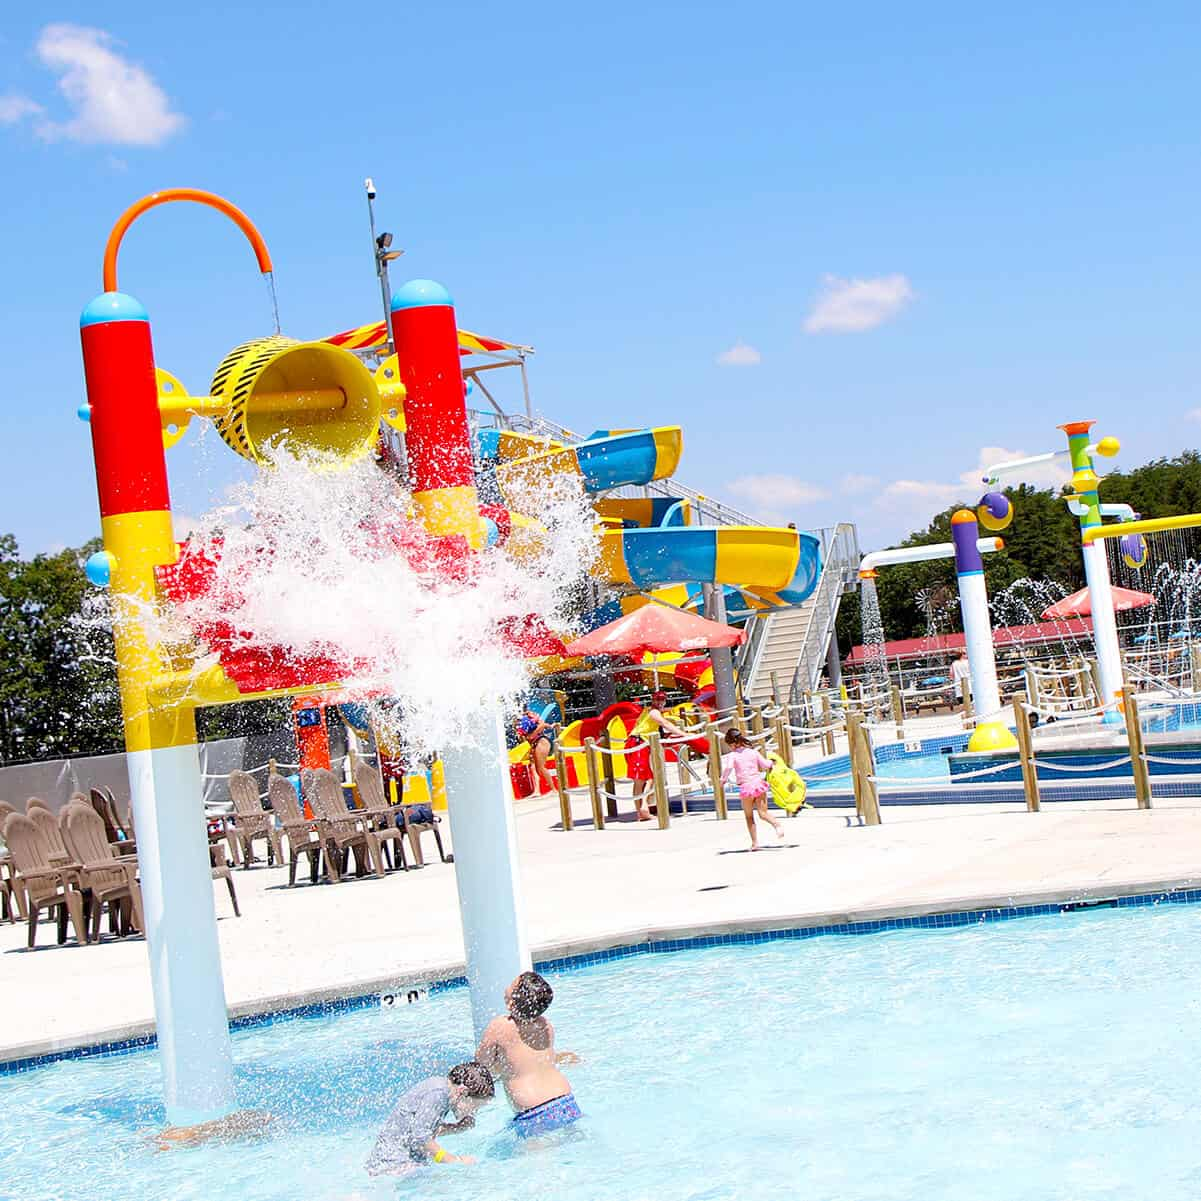 Kids enjoying our all new water park splash pads with construction-themed water bucket